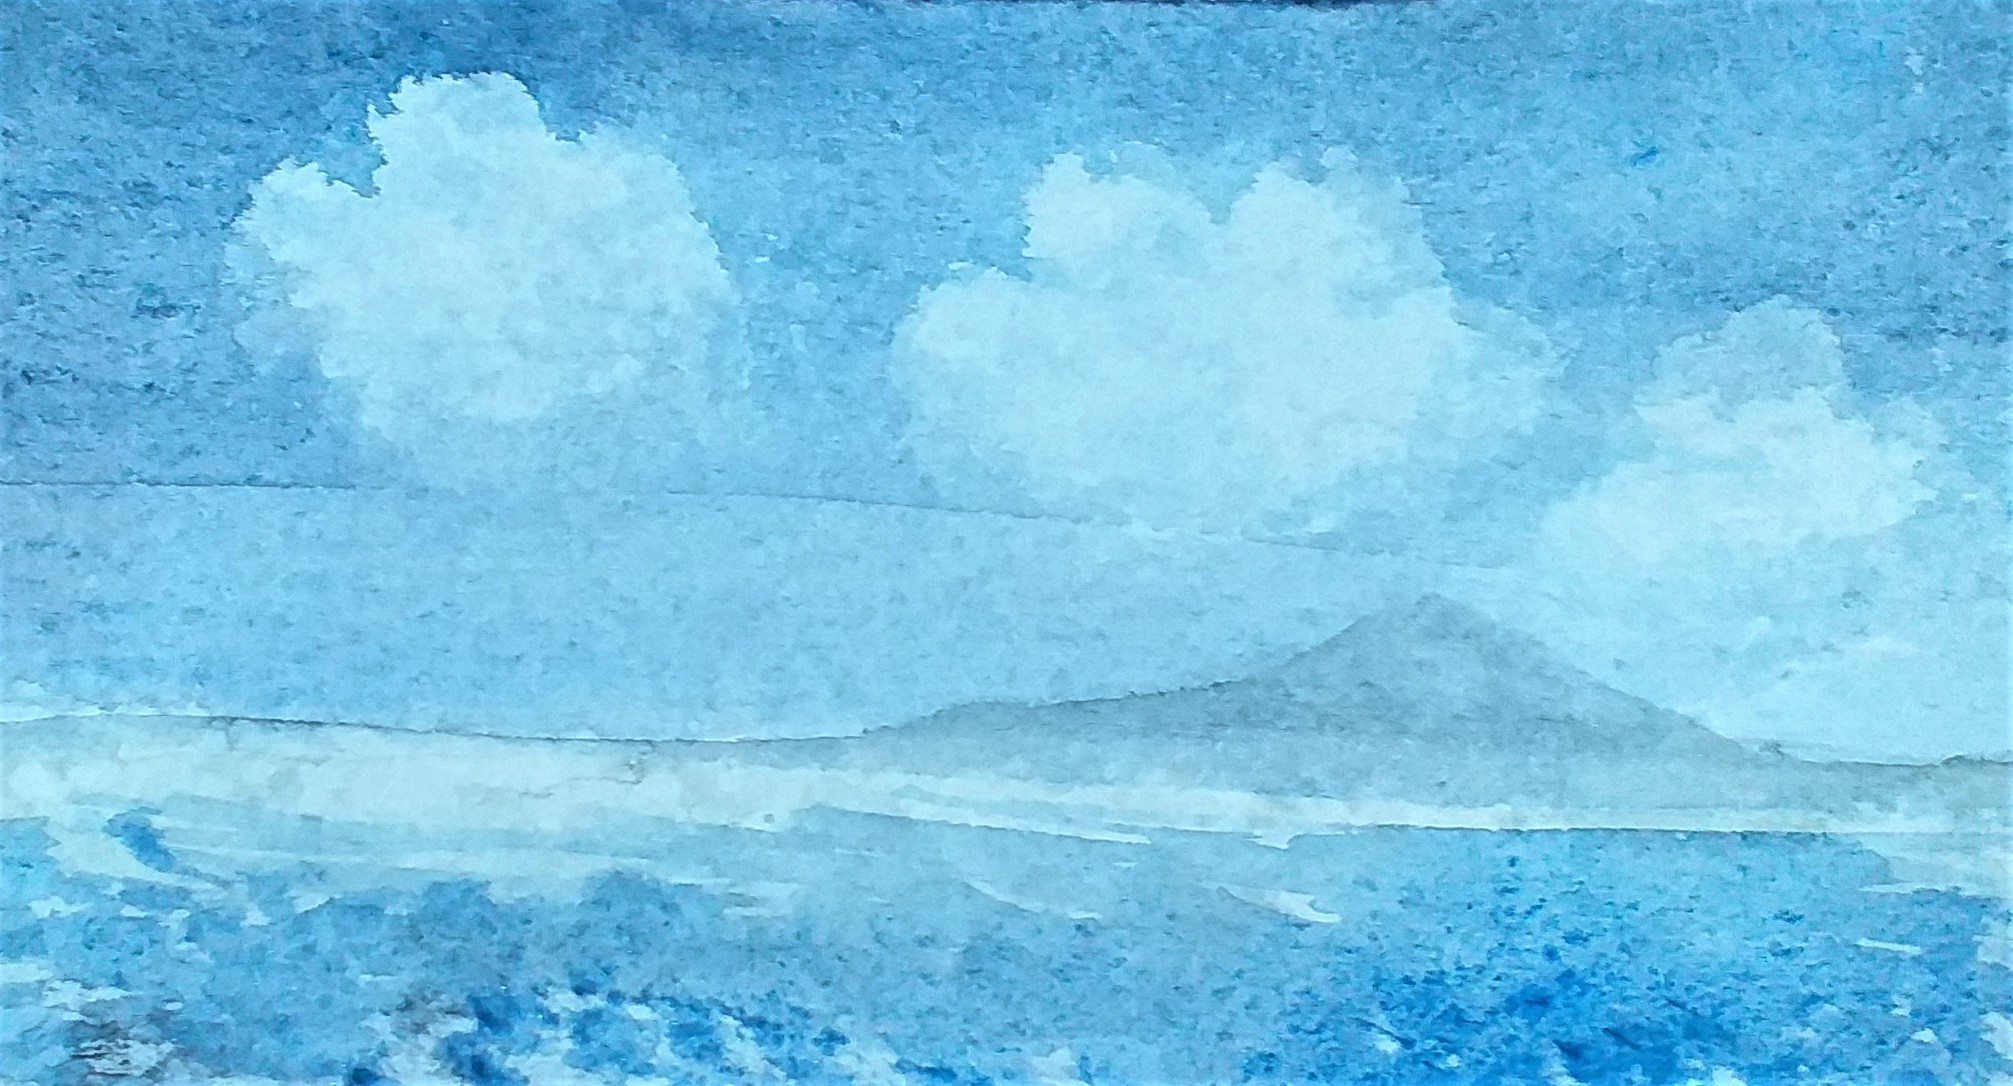 Seascape in Watercolour painted by Alison at Fundamental Art Skills course in Kidderminster